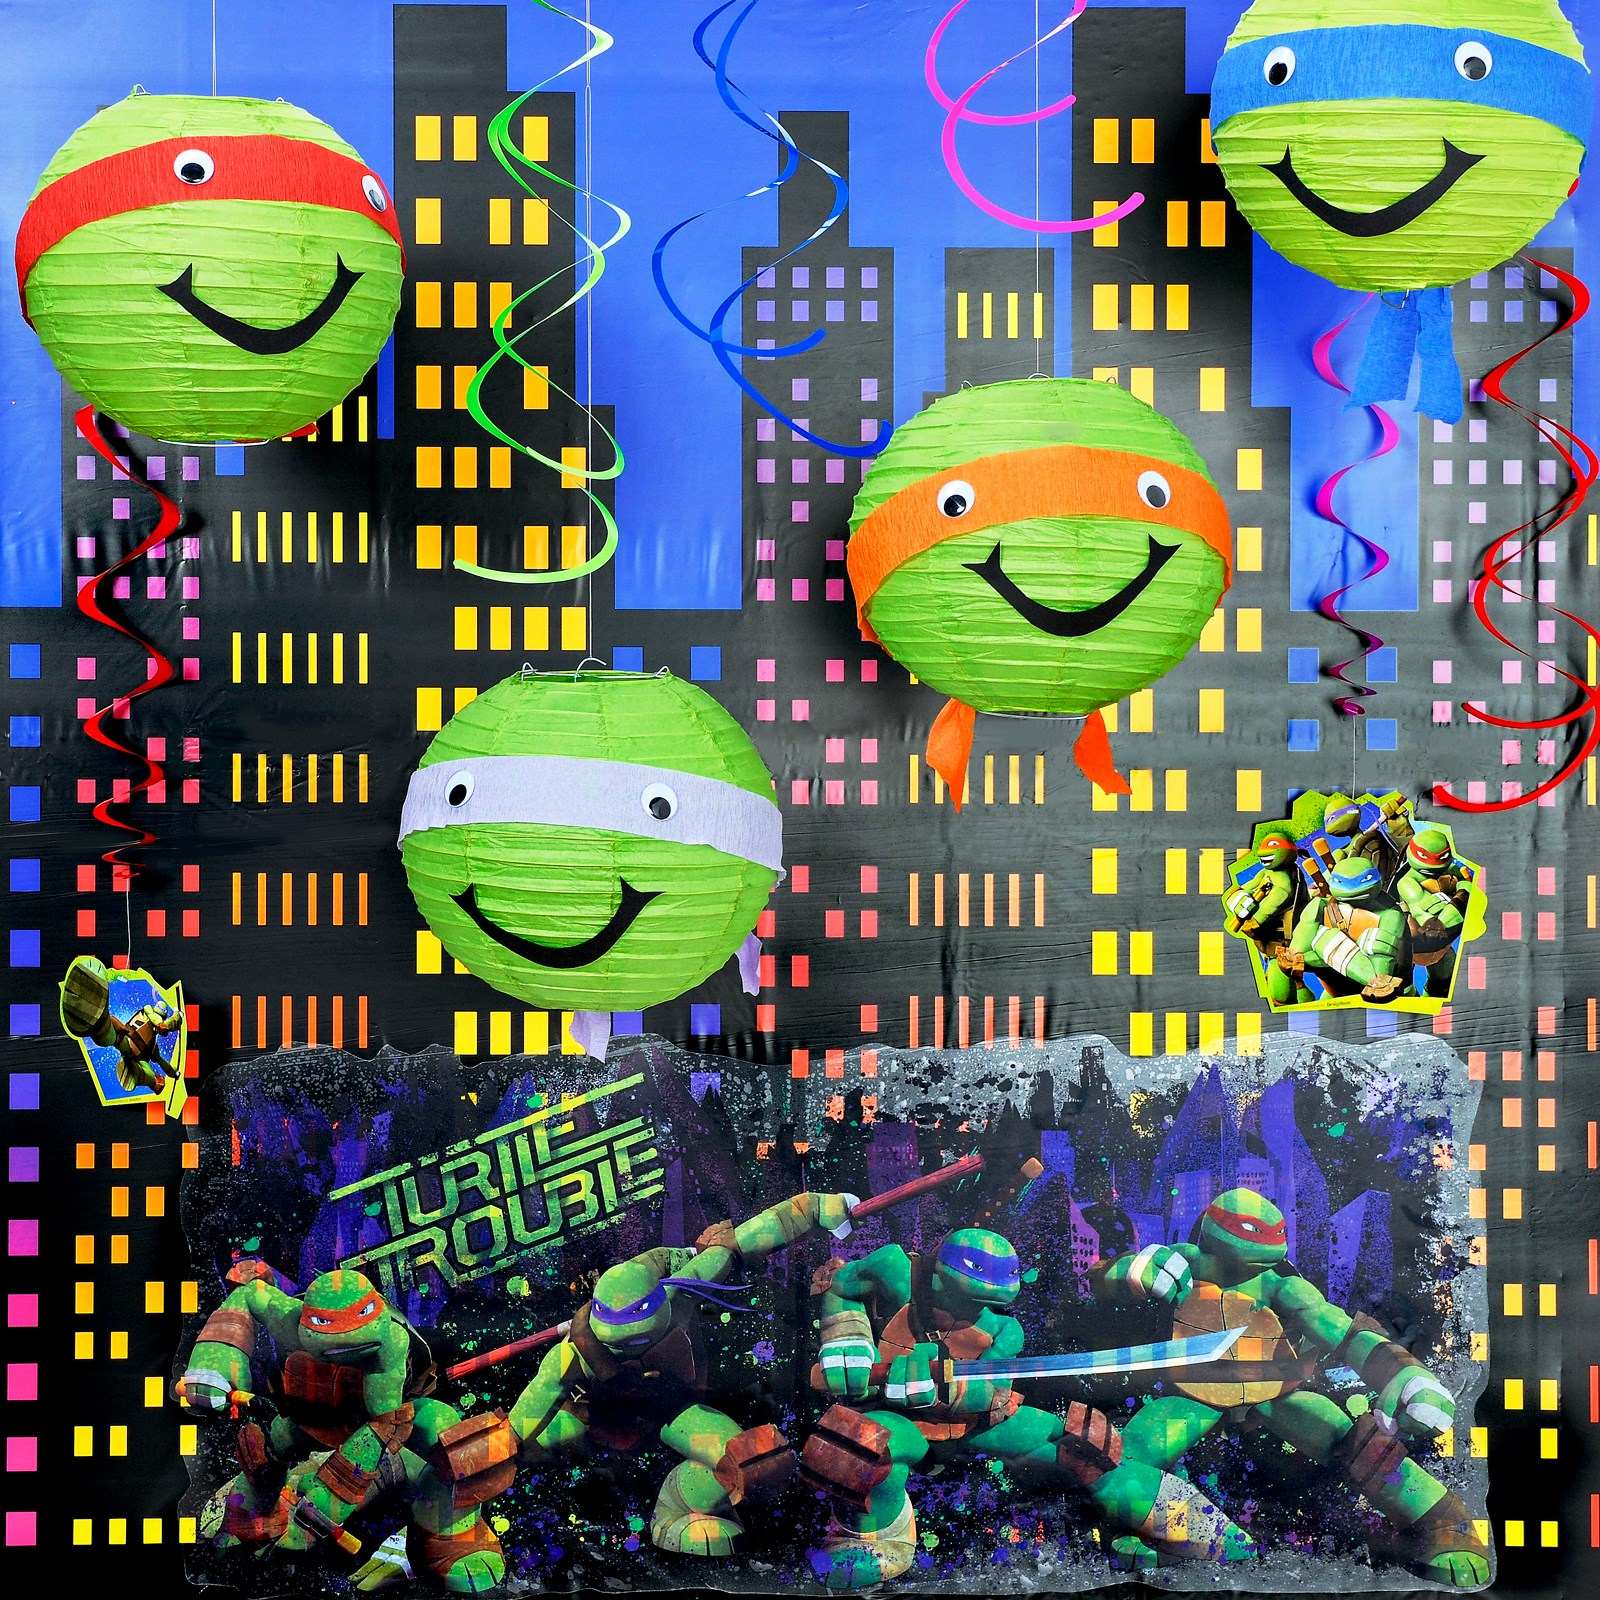 D.I.Y. Teenage Mutant Ninja Turtles Room Decor - D.I.Y. Kit Materials - 1 Guests